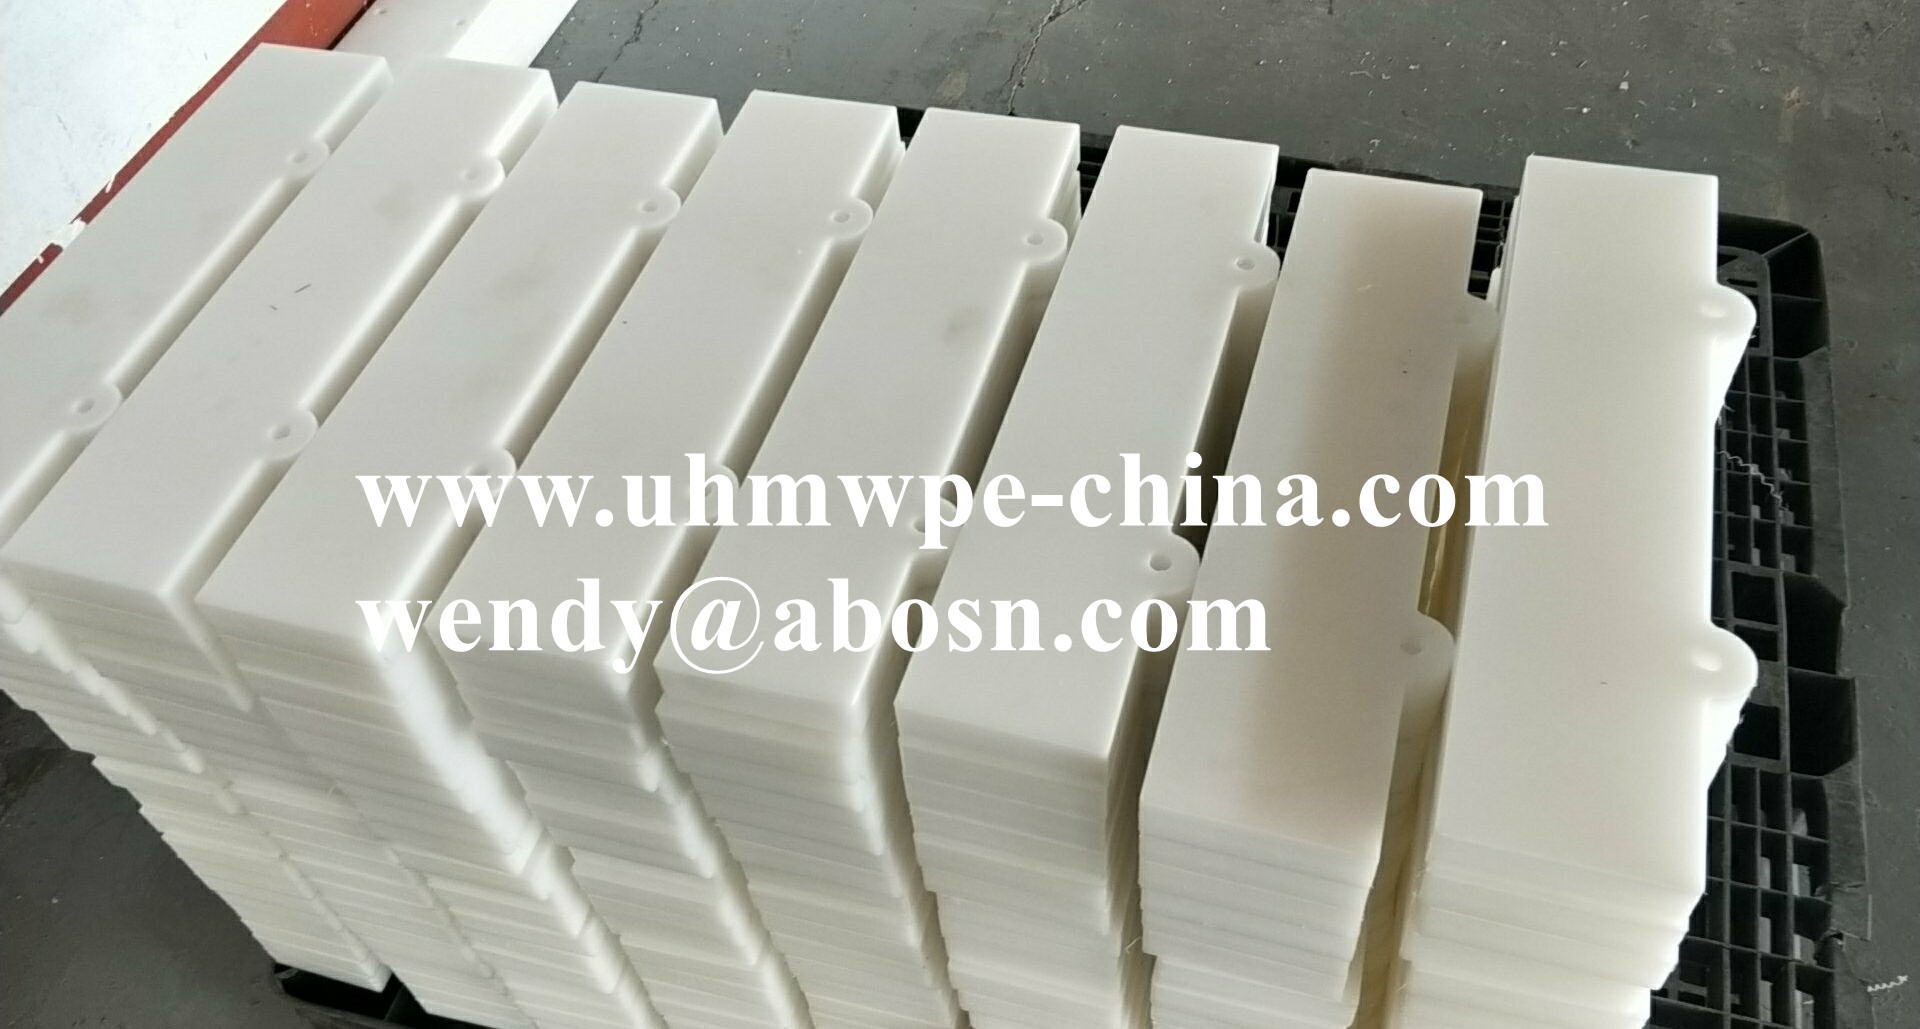 UHMWPE Block | Chain Guide | Roller